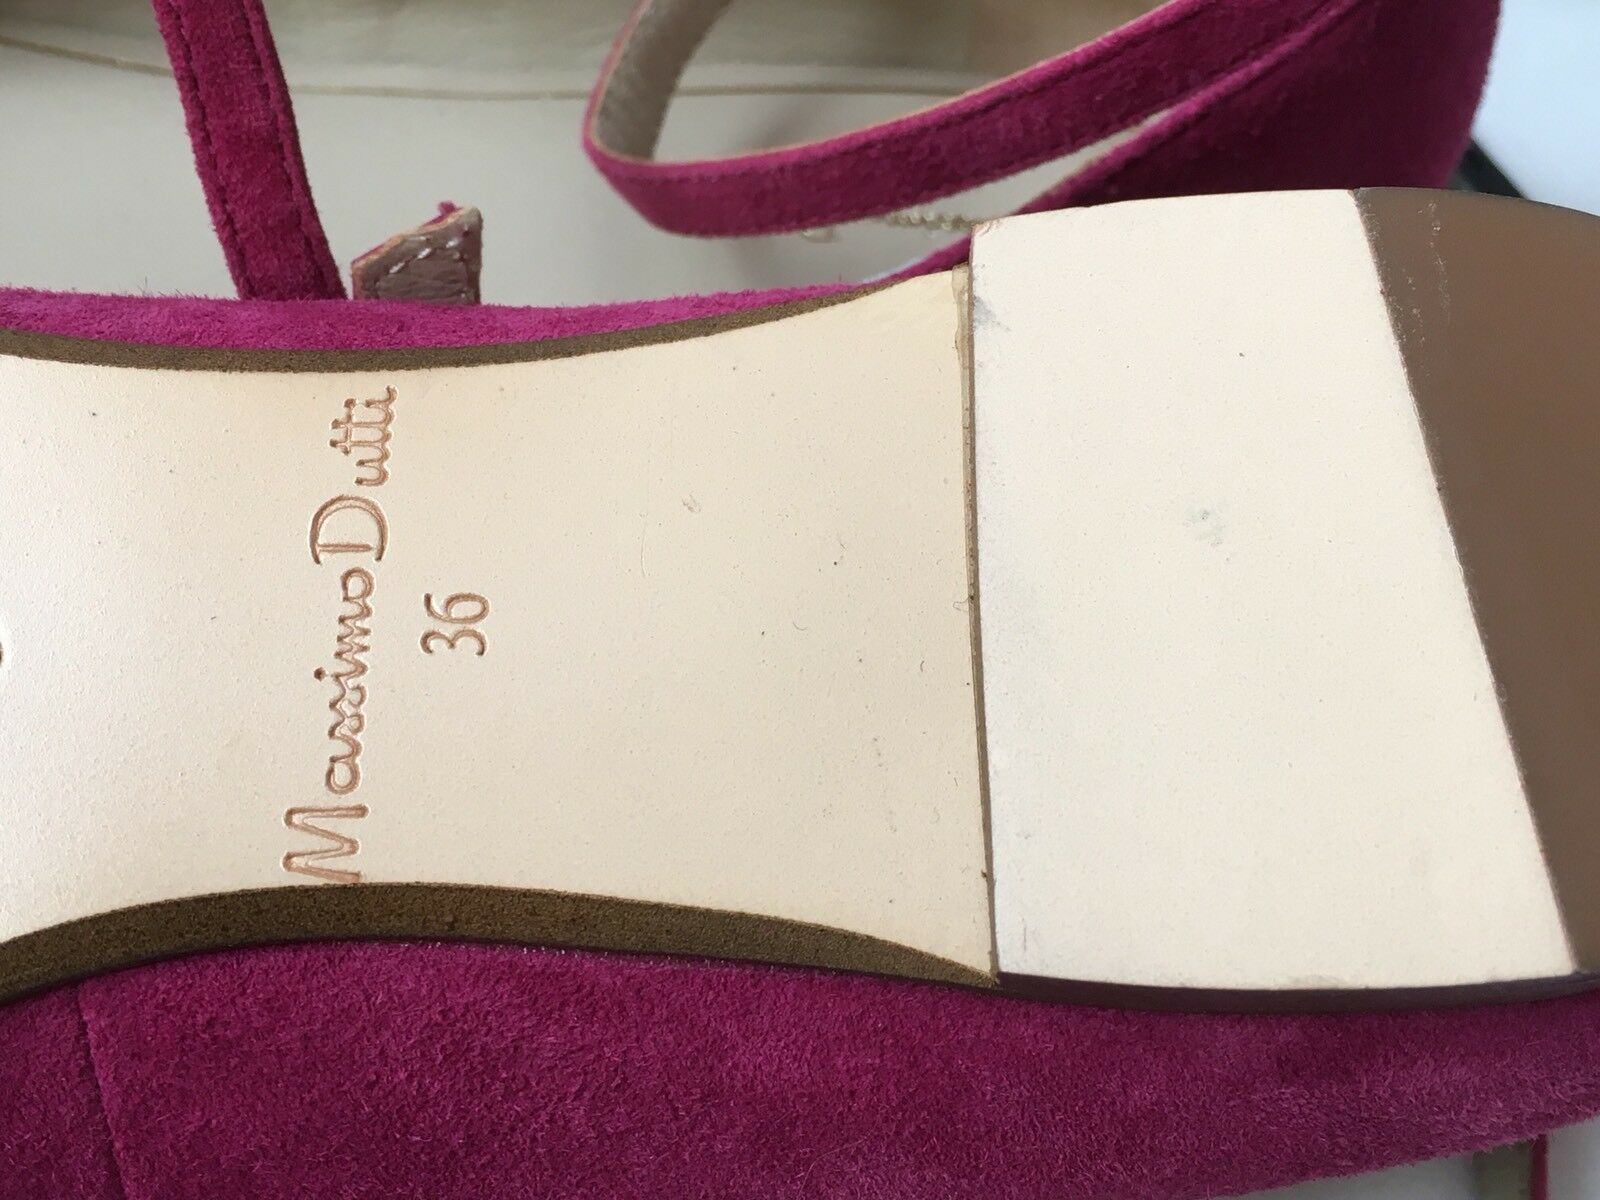 NEW NEW NEW MASSIMO DUTTI SUEDE LEATHER FLAT SHOES UK3 (36) ef29ac